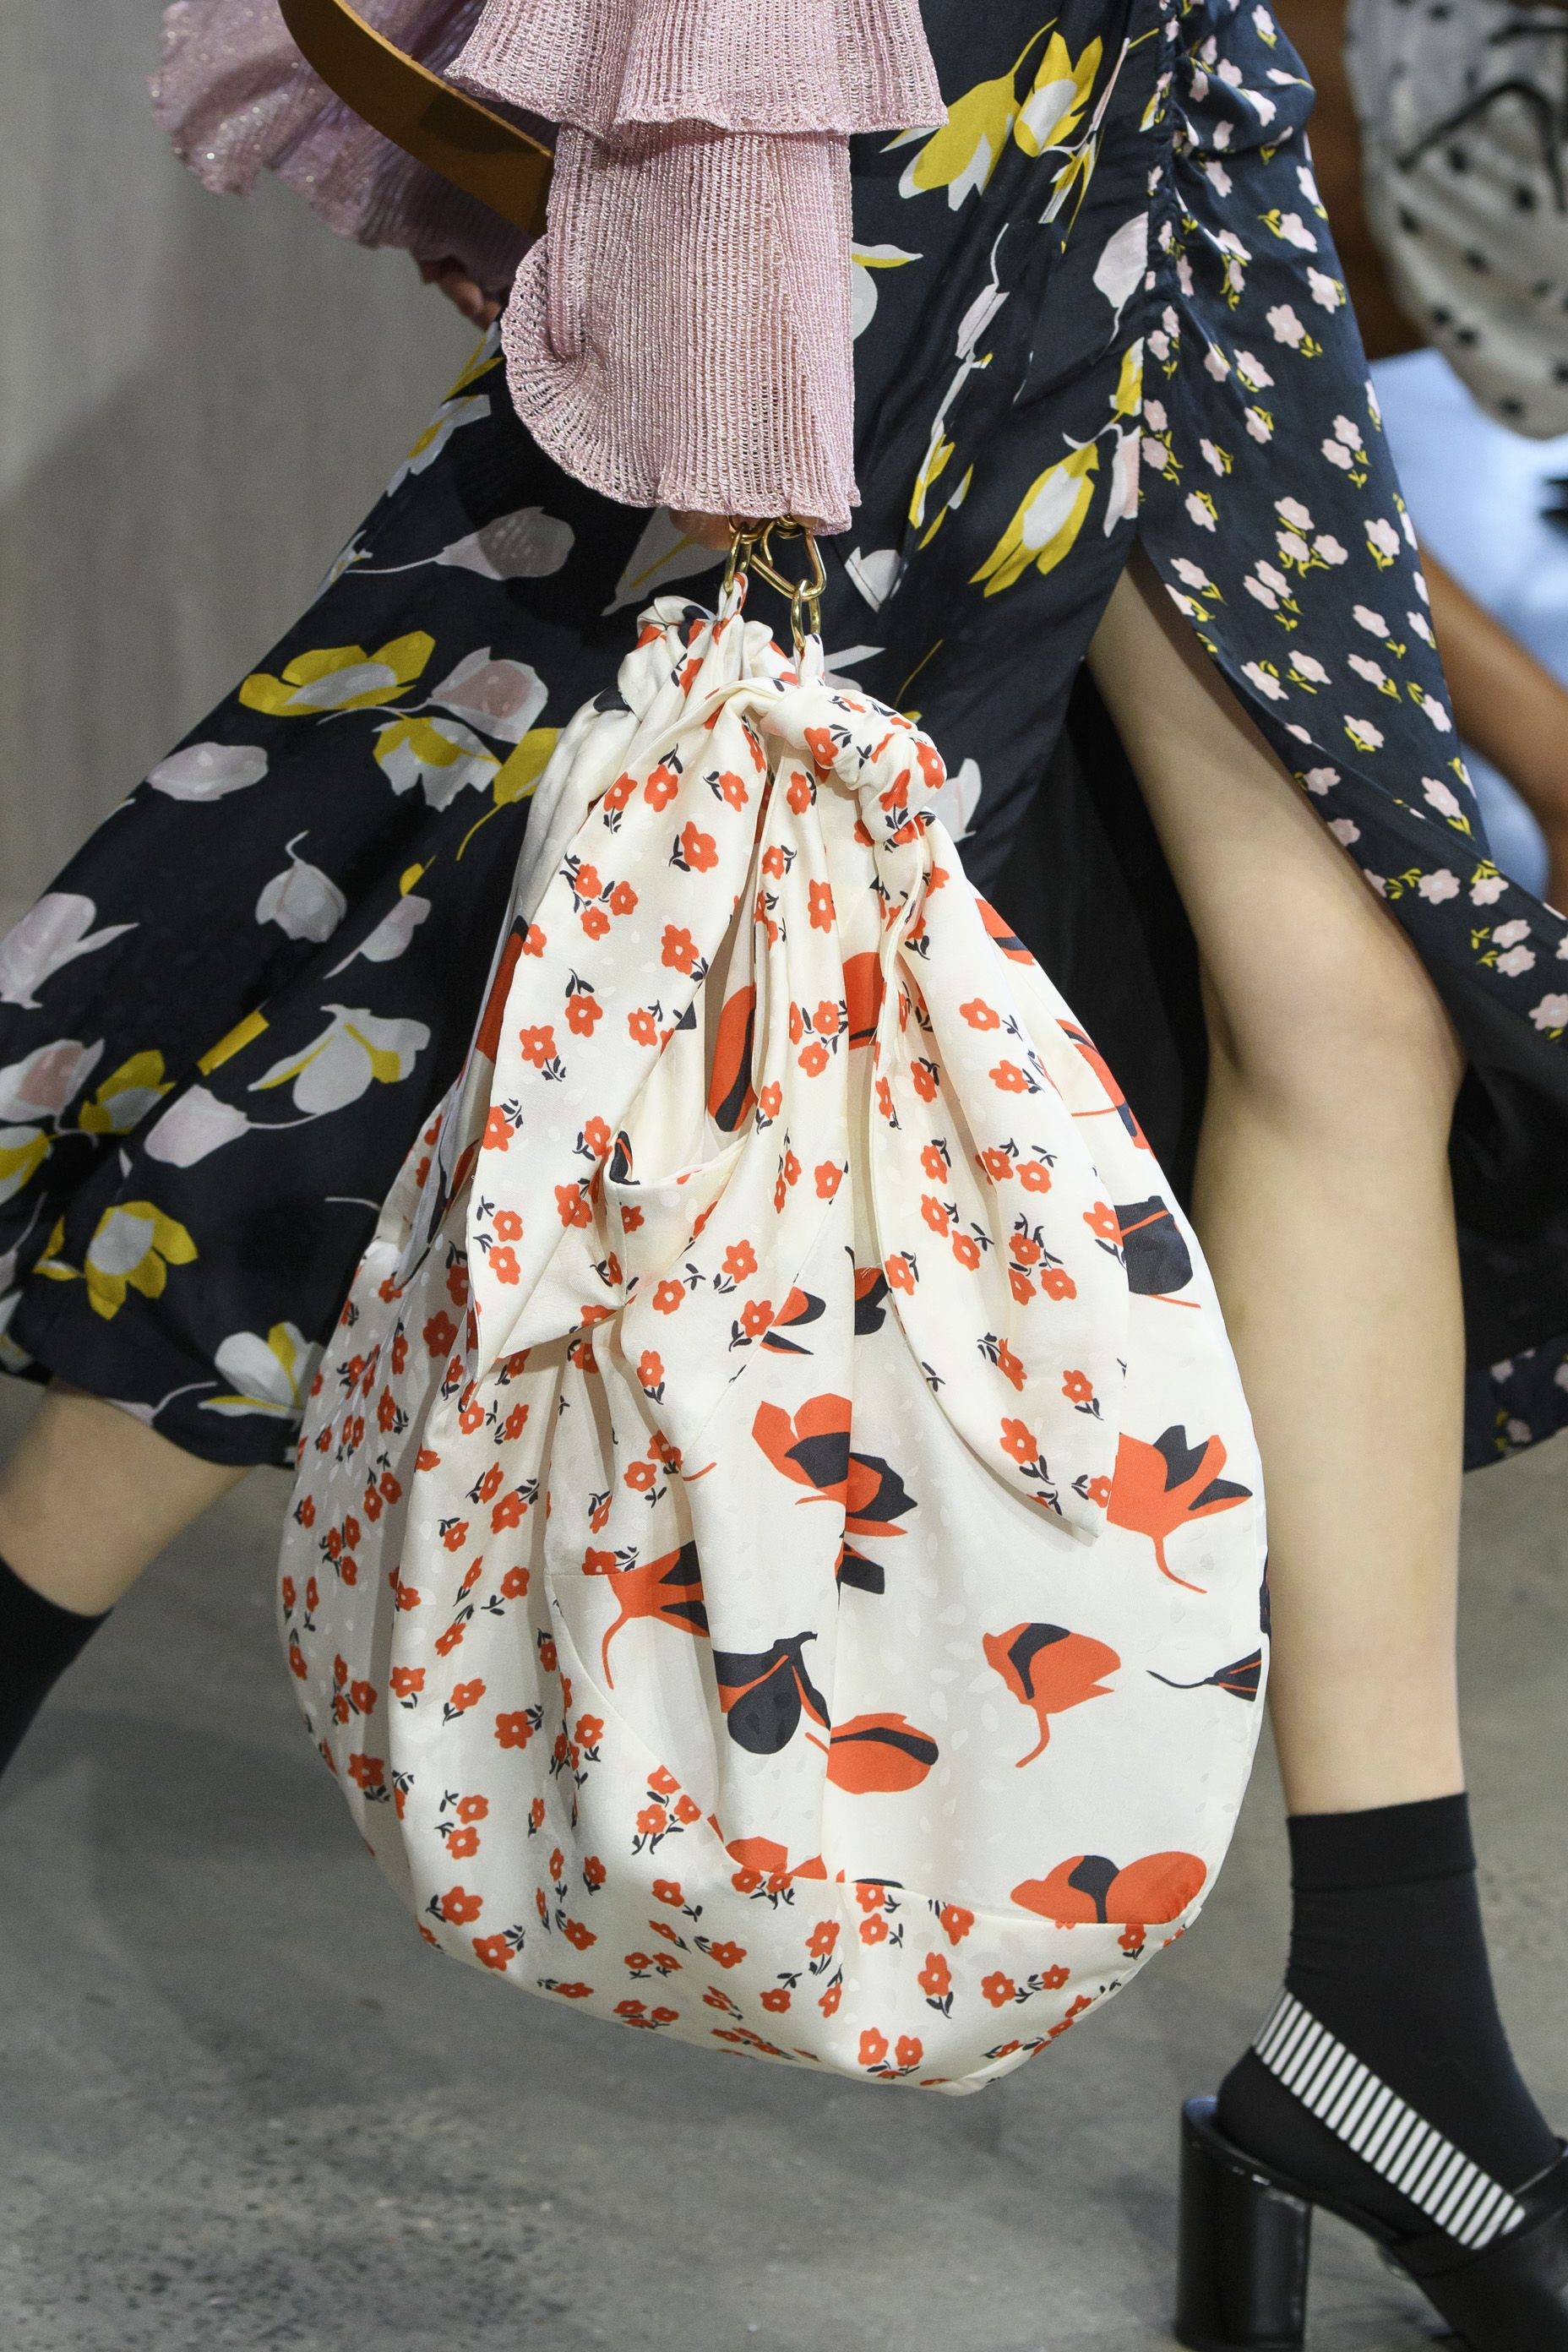 11 Spring Bag Trends 2019 — Top Spring Accessory Runway Trends For Women a2b3a2accb6ac